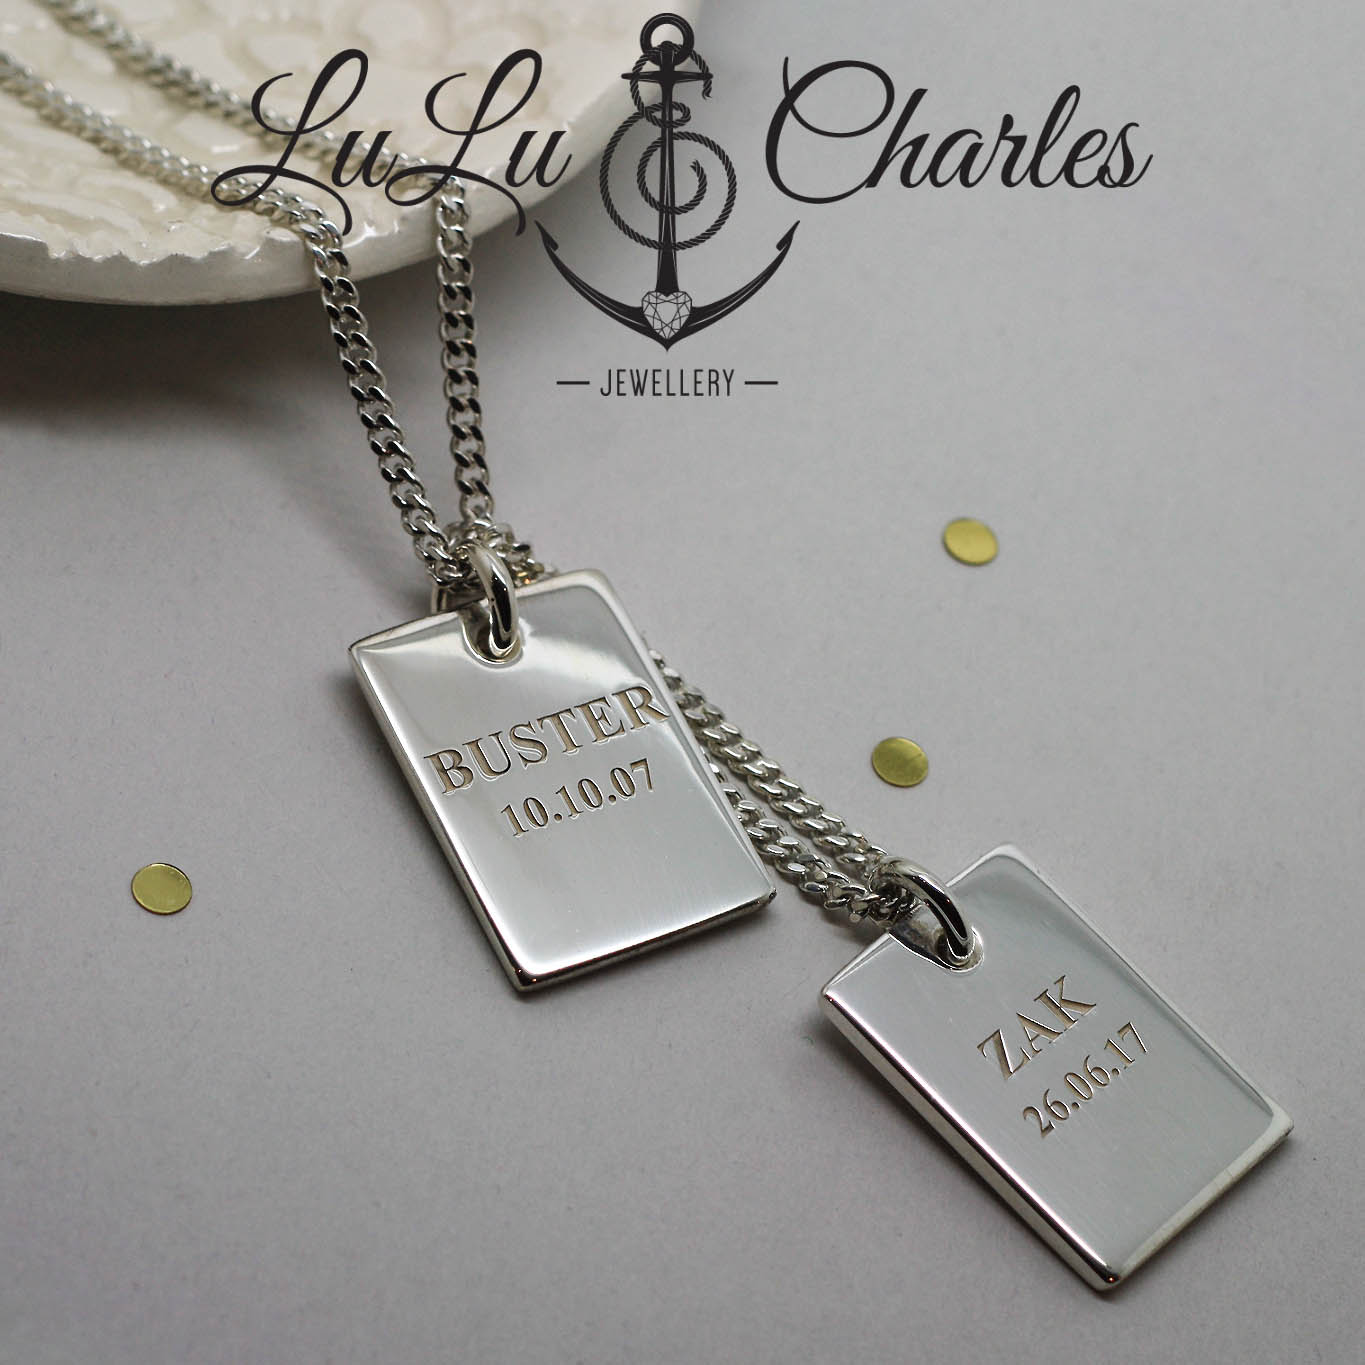 Handmade-Sterling-Silver-Personalised-Dog-Tags-Containing-Cremation-Ashes-uk